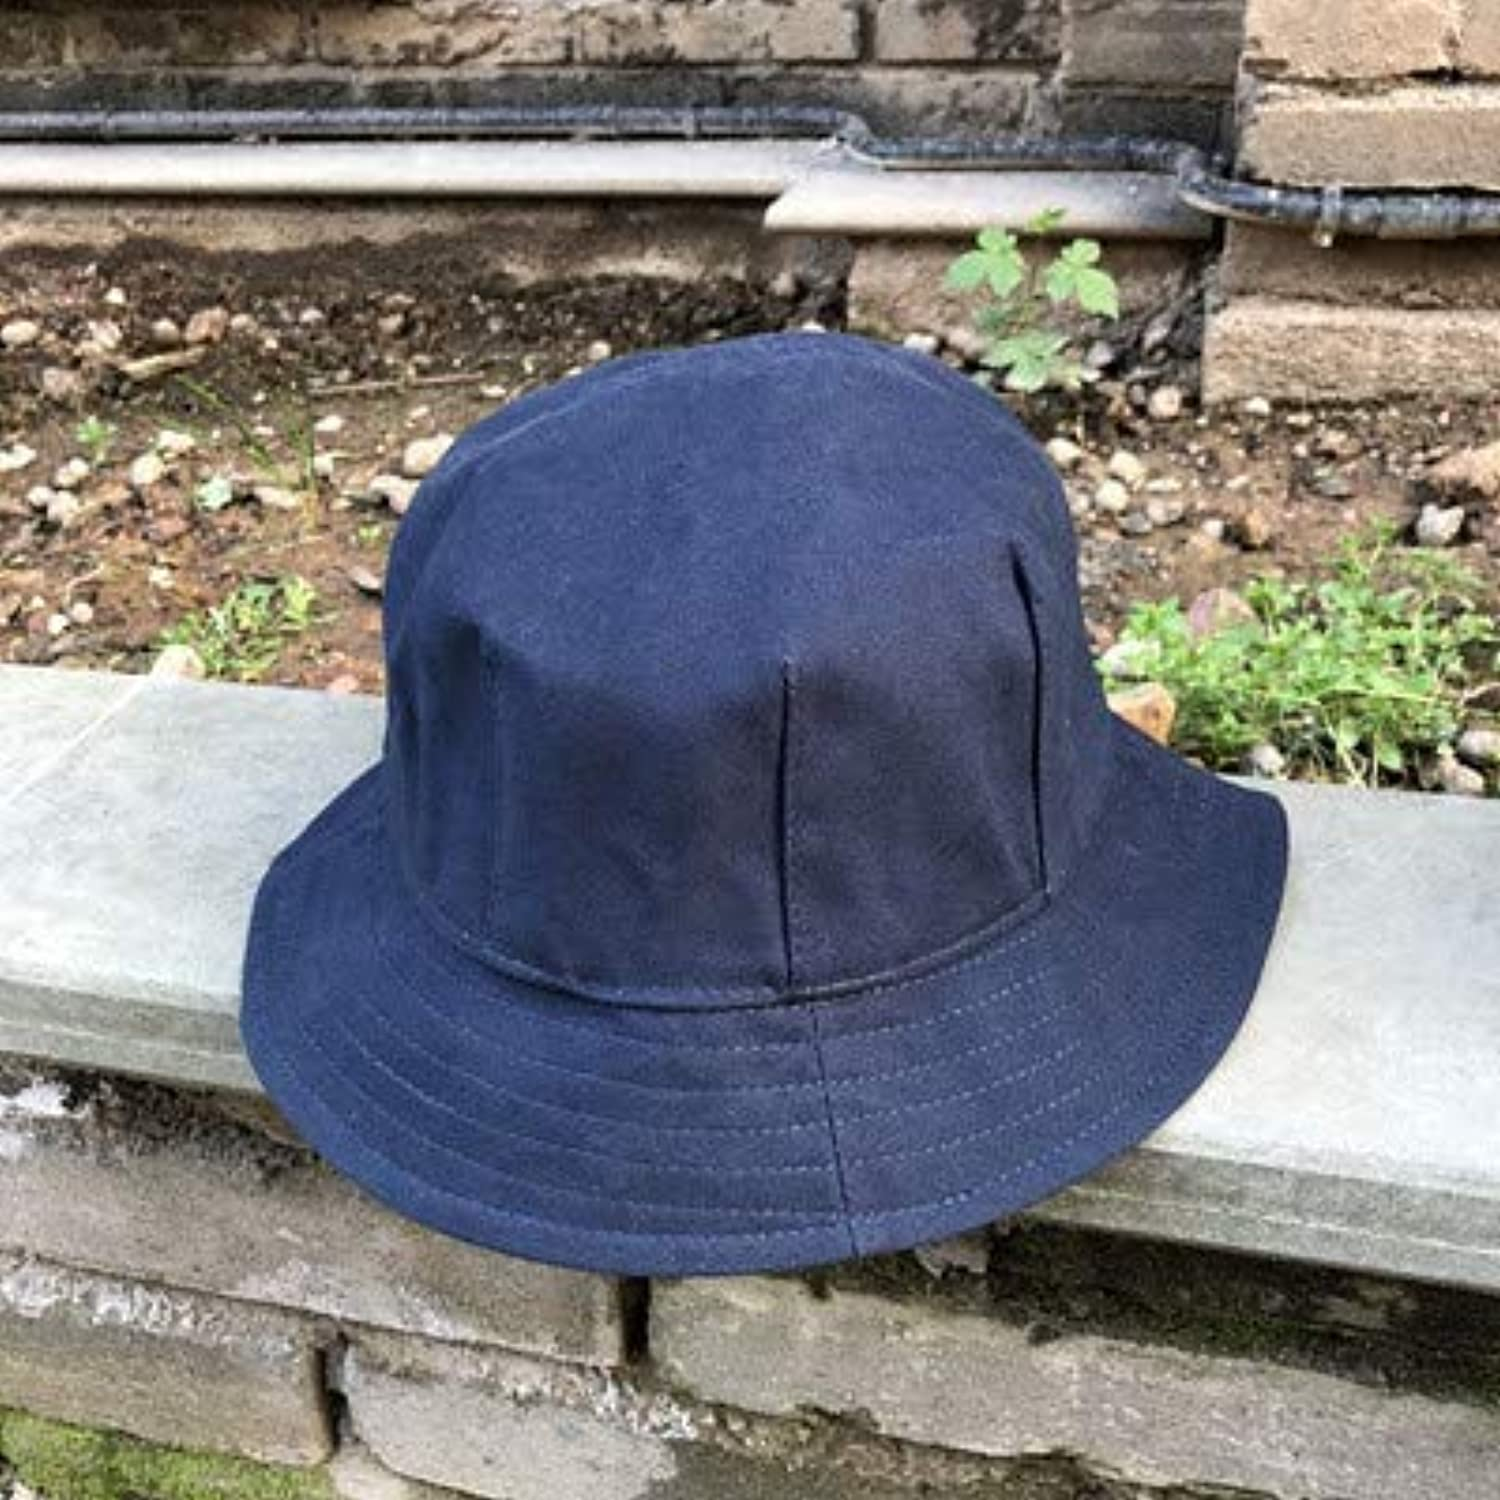 Home Literary Japanese Dome Retro Otaru Simple Fisherman Hat Men and Women Summer Solid color Light Body Sun Hat Outer Basin Cap (color   Navy, Size   M(5658cm)) Warm Soft and Comfortable Hats